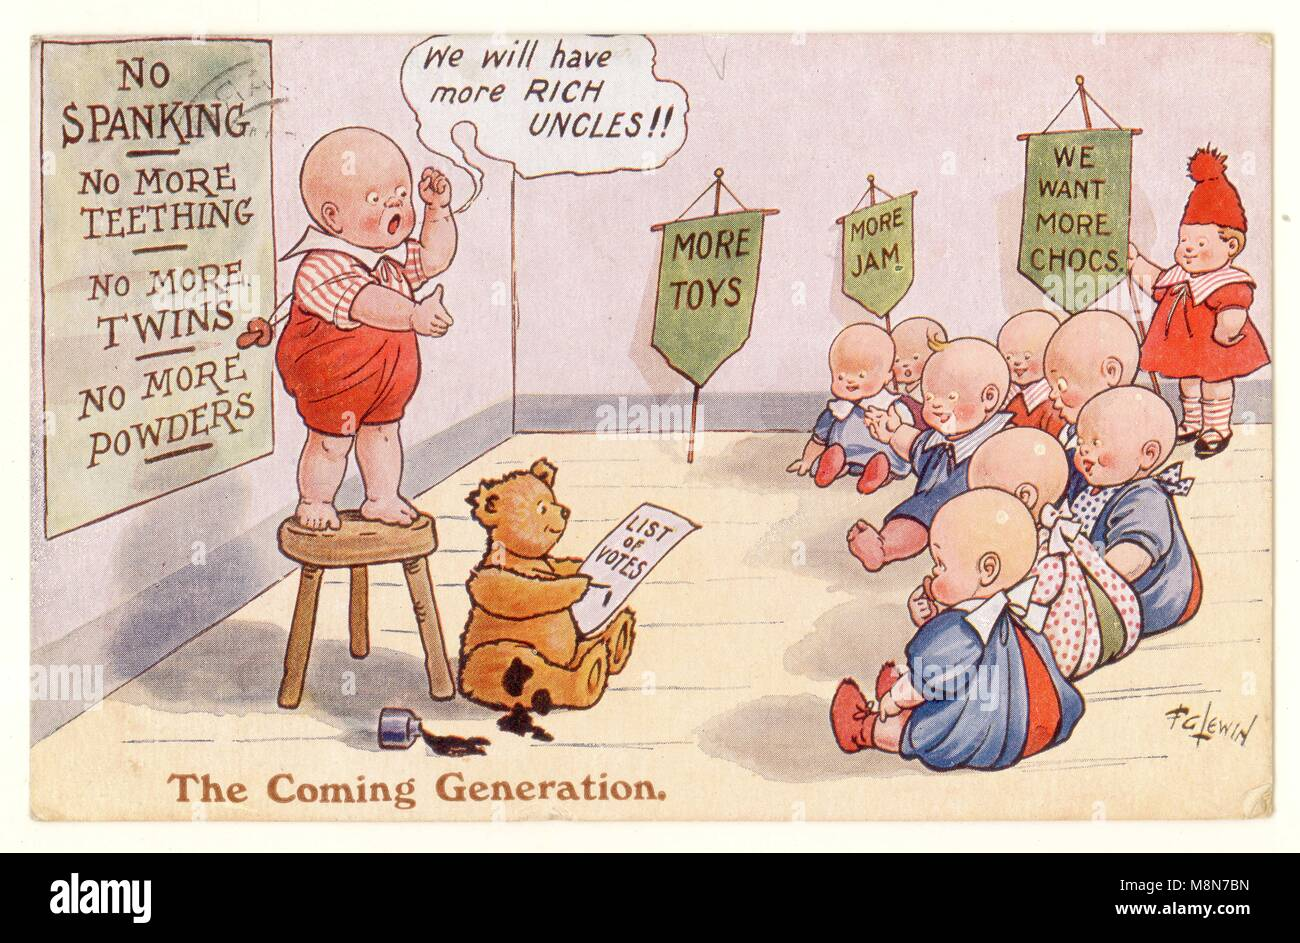 1920s comic postcard - the Coming Generation - on spoilt children with the vote, seems to  be a comment on suffrage - Stock Image